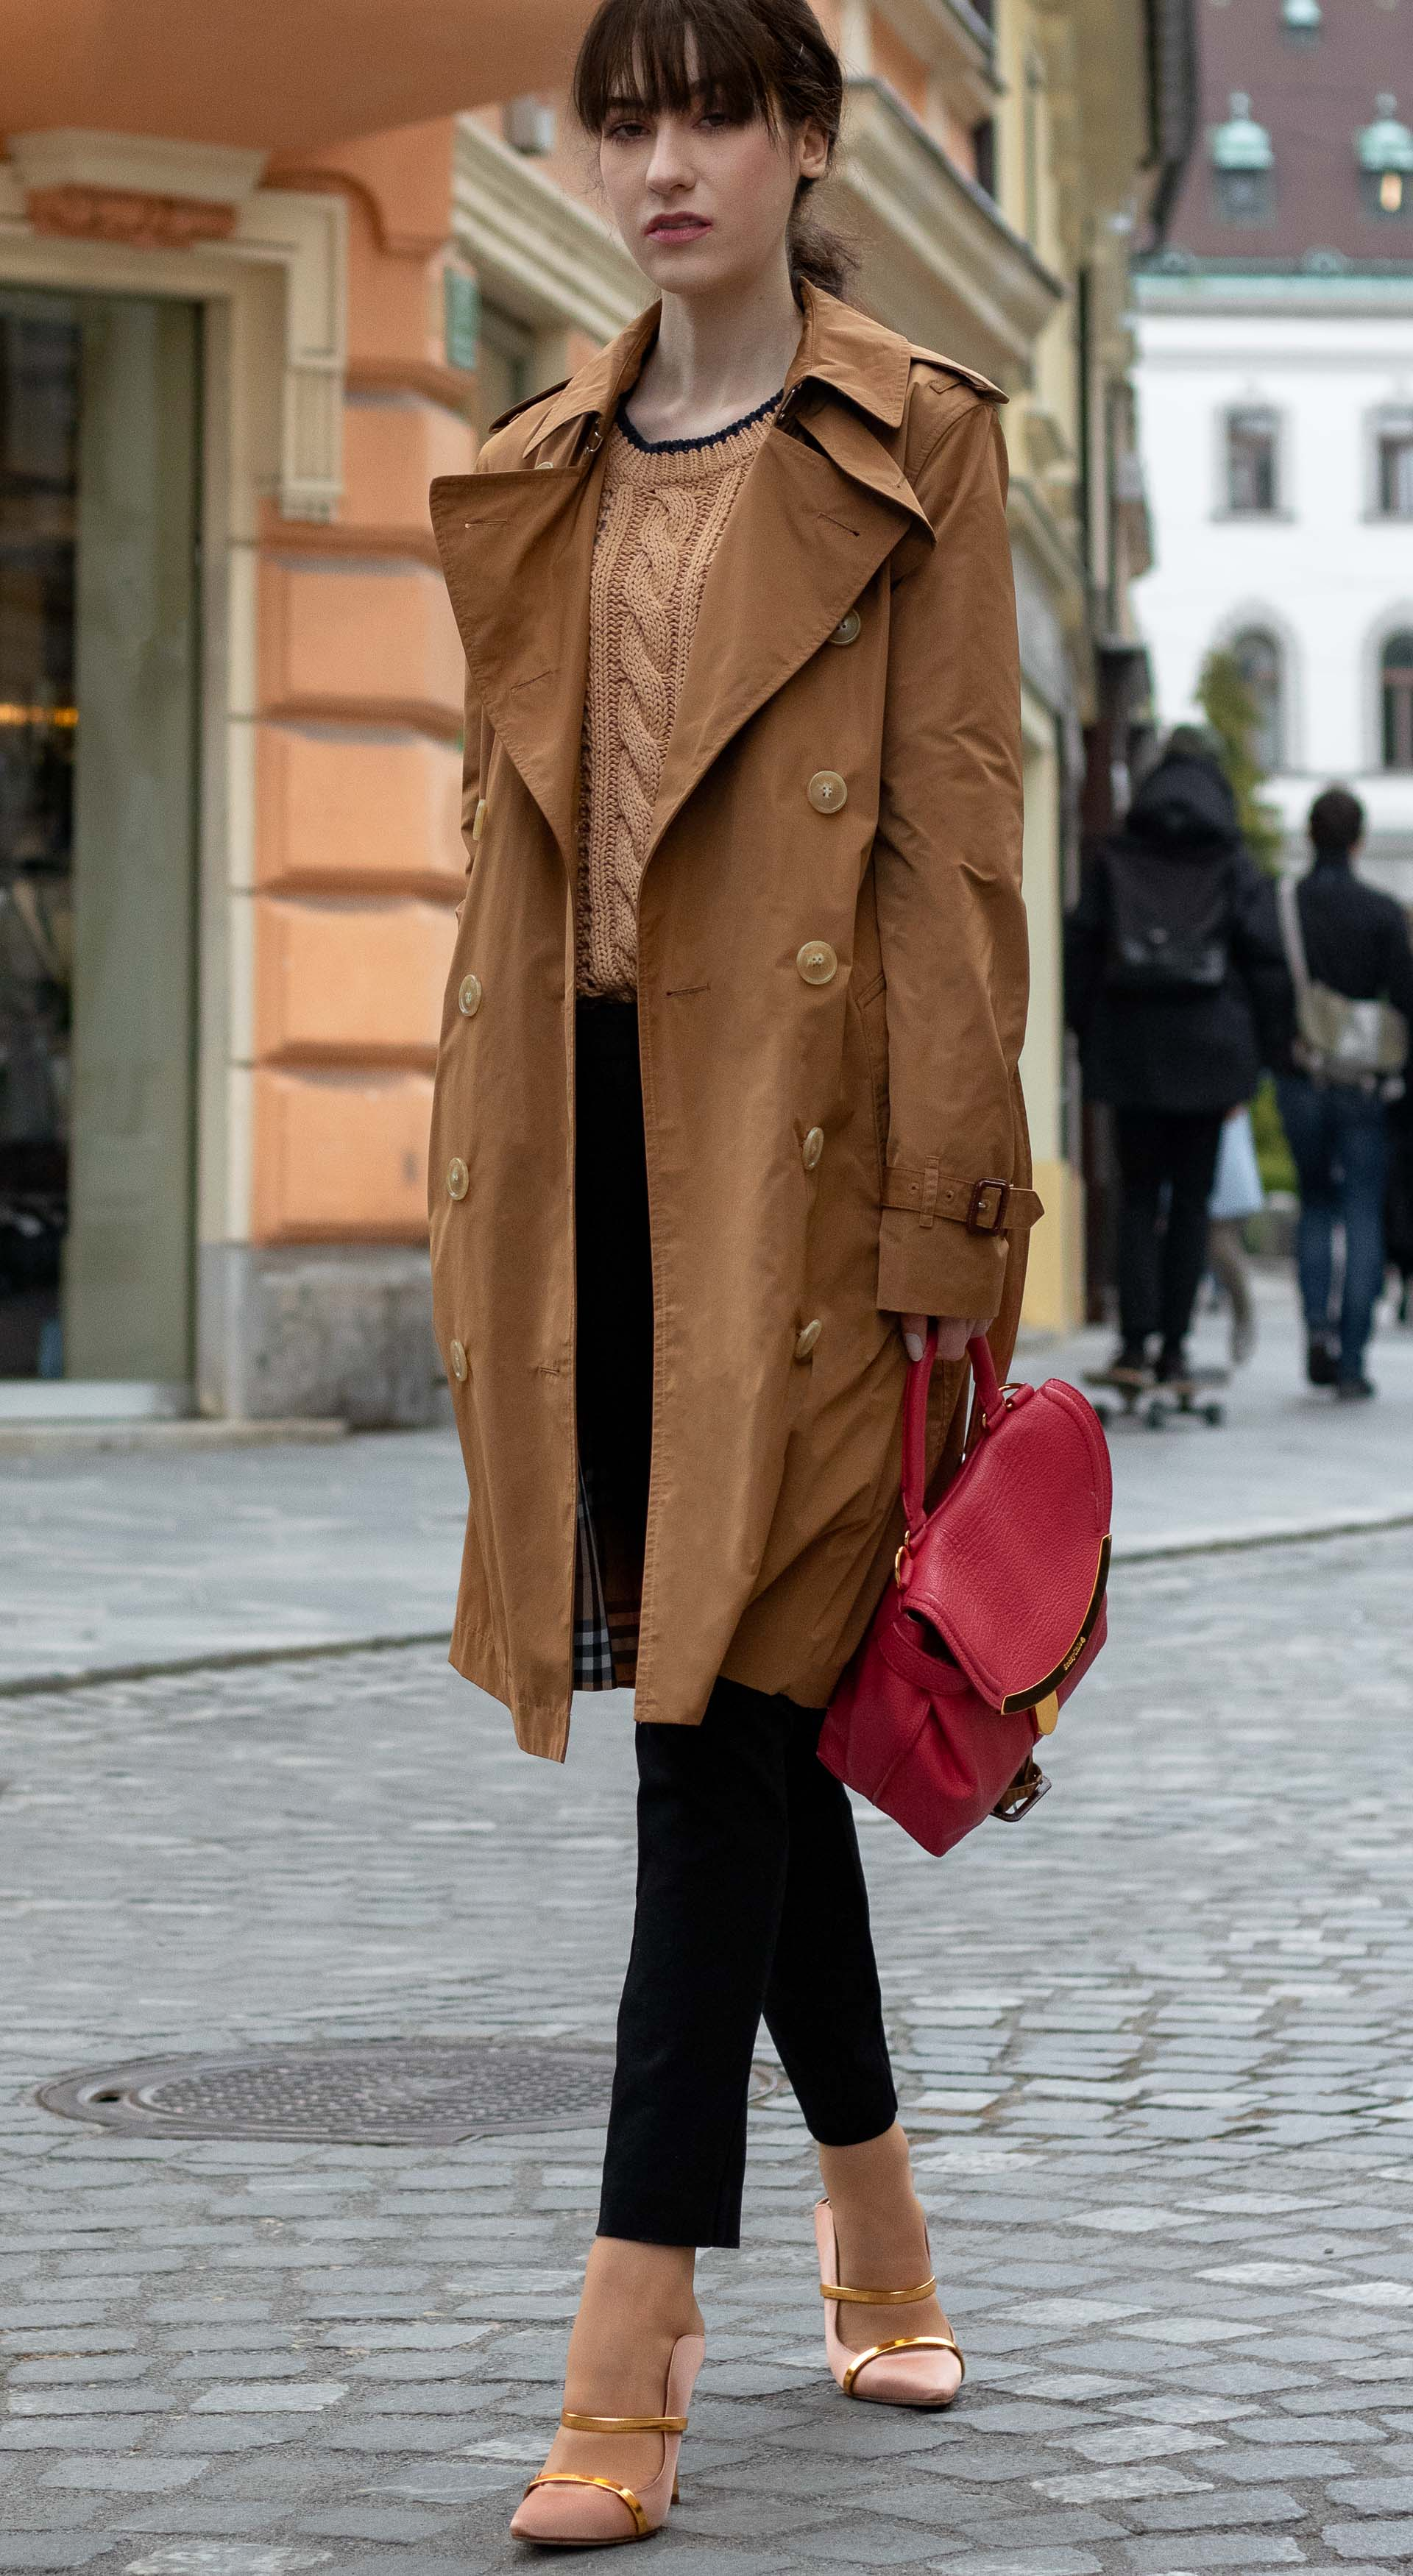 Must follow Slovenian Fashion Blogger Veronika Lipar of Brunette from Wall Street dressed in camel Burberry trench coat Mango cable knit sweater black trousers blush Malone Souliers mules pink top handle bag low ponytail bangs going to work